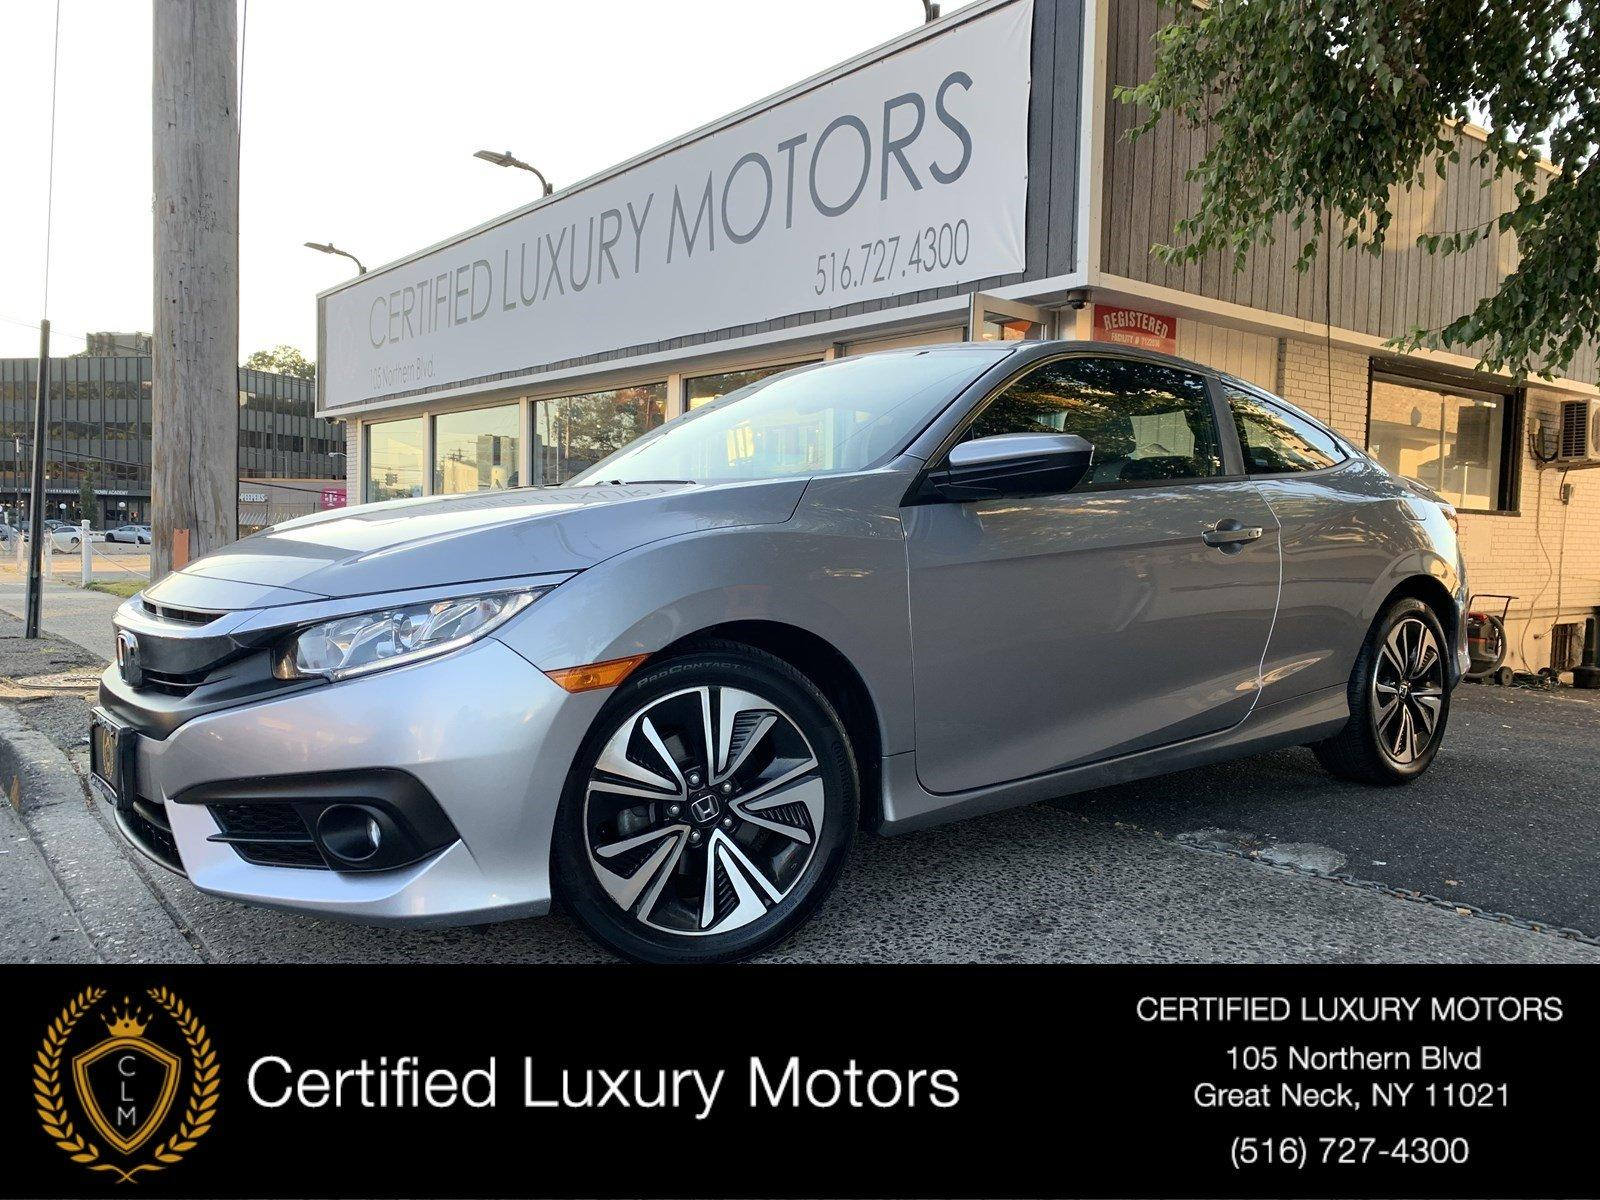 2017 honda civic ex-t coupe manual for sale